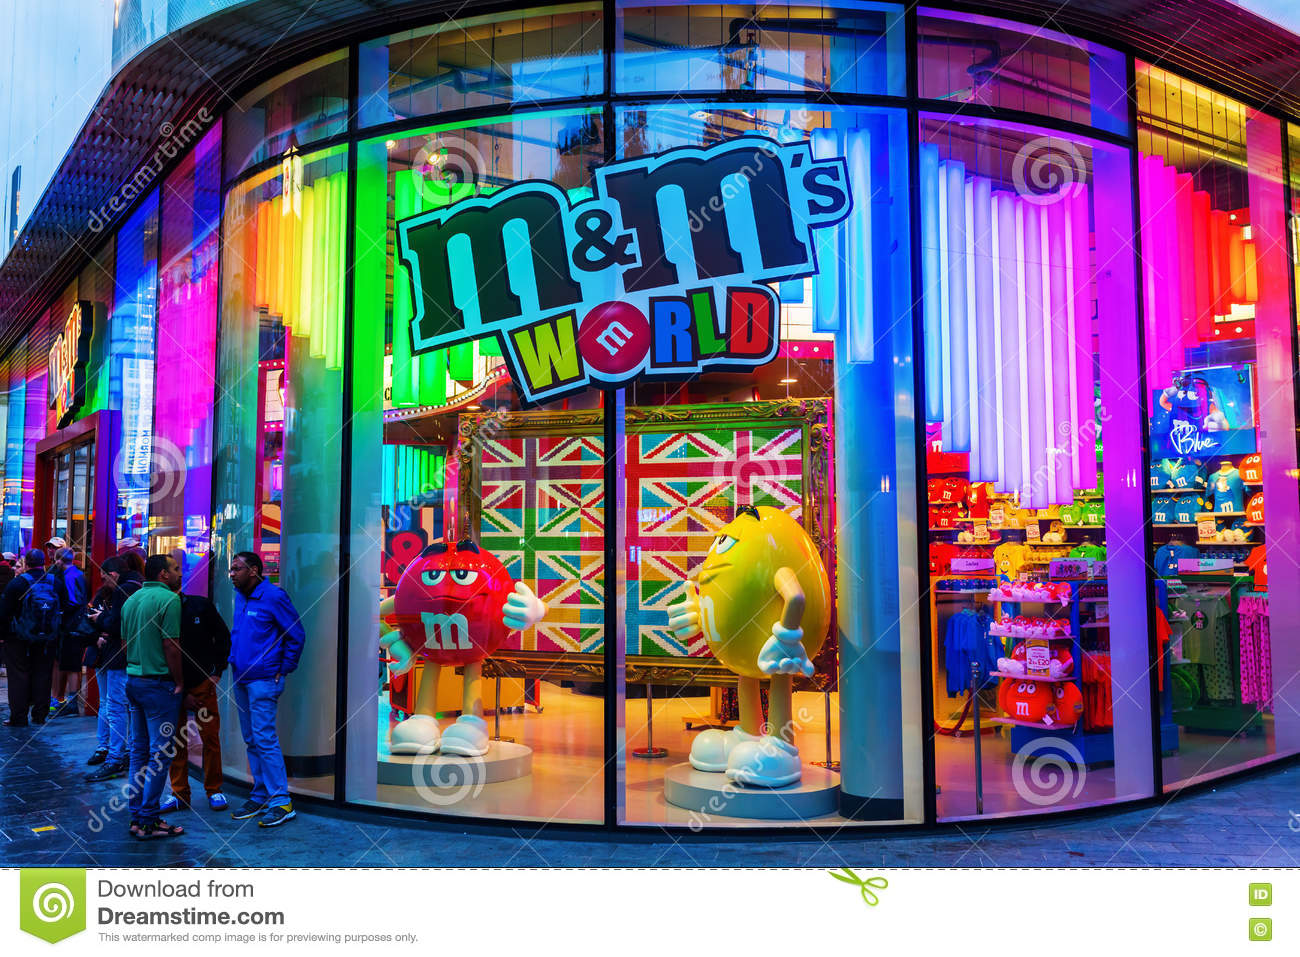 m m store in london  uk  at night editorial image image fabulous las vegas sign vector free welcome to fabulous las vegas sign vector free